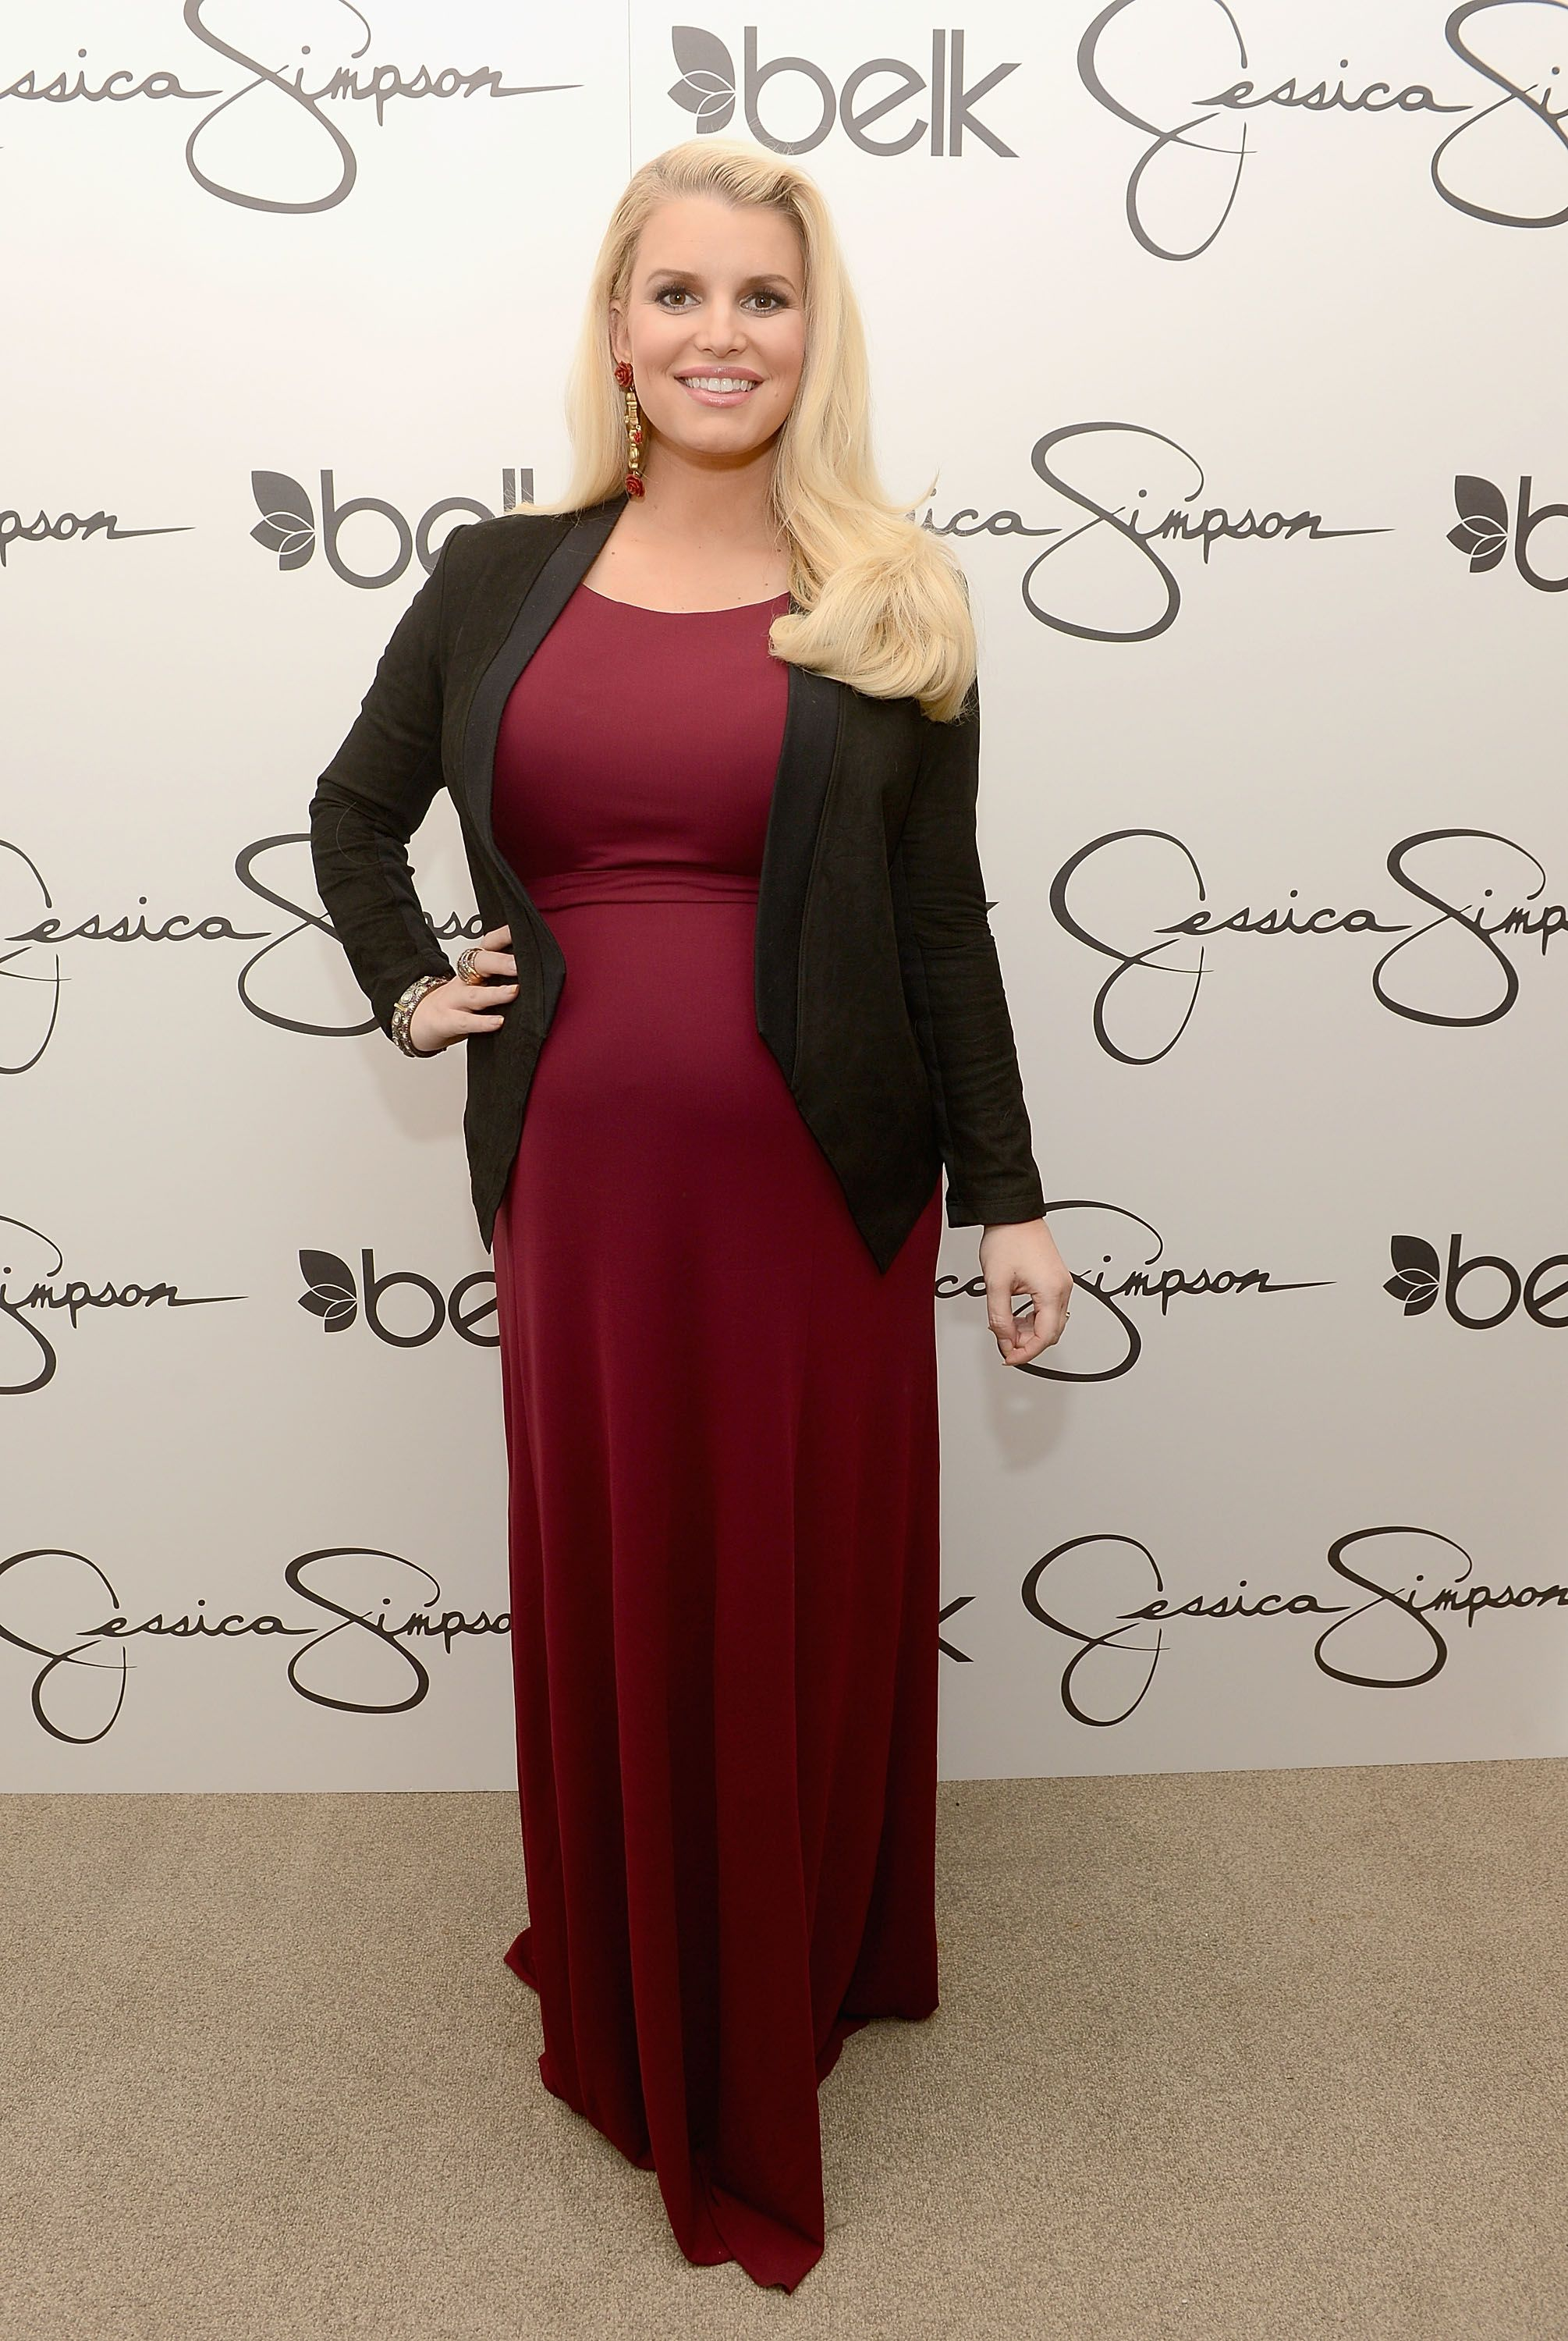 Who: Designer Jessica Simpson Height: Simpson's height has been reported as both 5'2 and 5'3   Read more: http://stylecaster.com/short-celebrities/#ixzz3aHgNV797